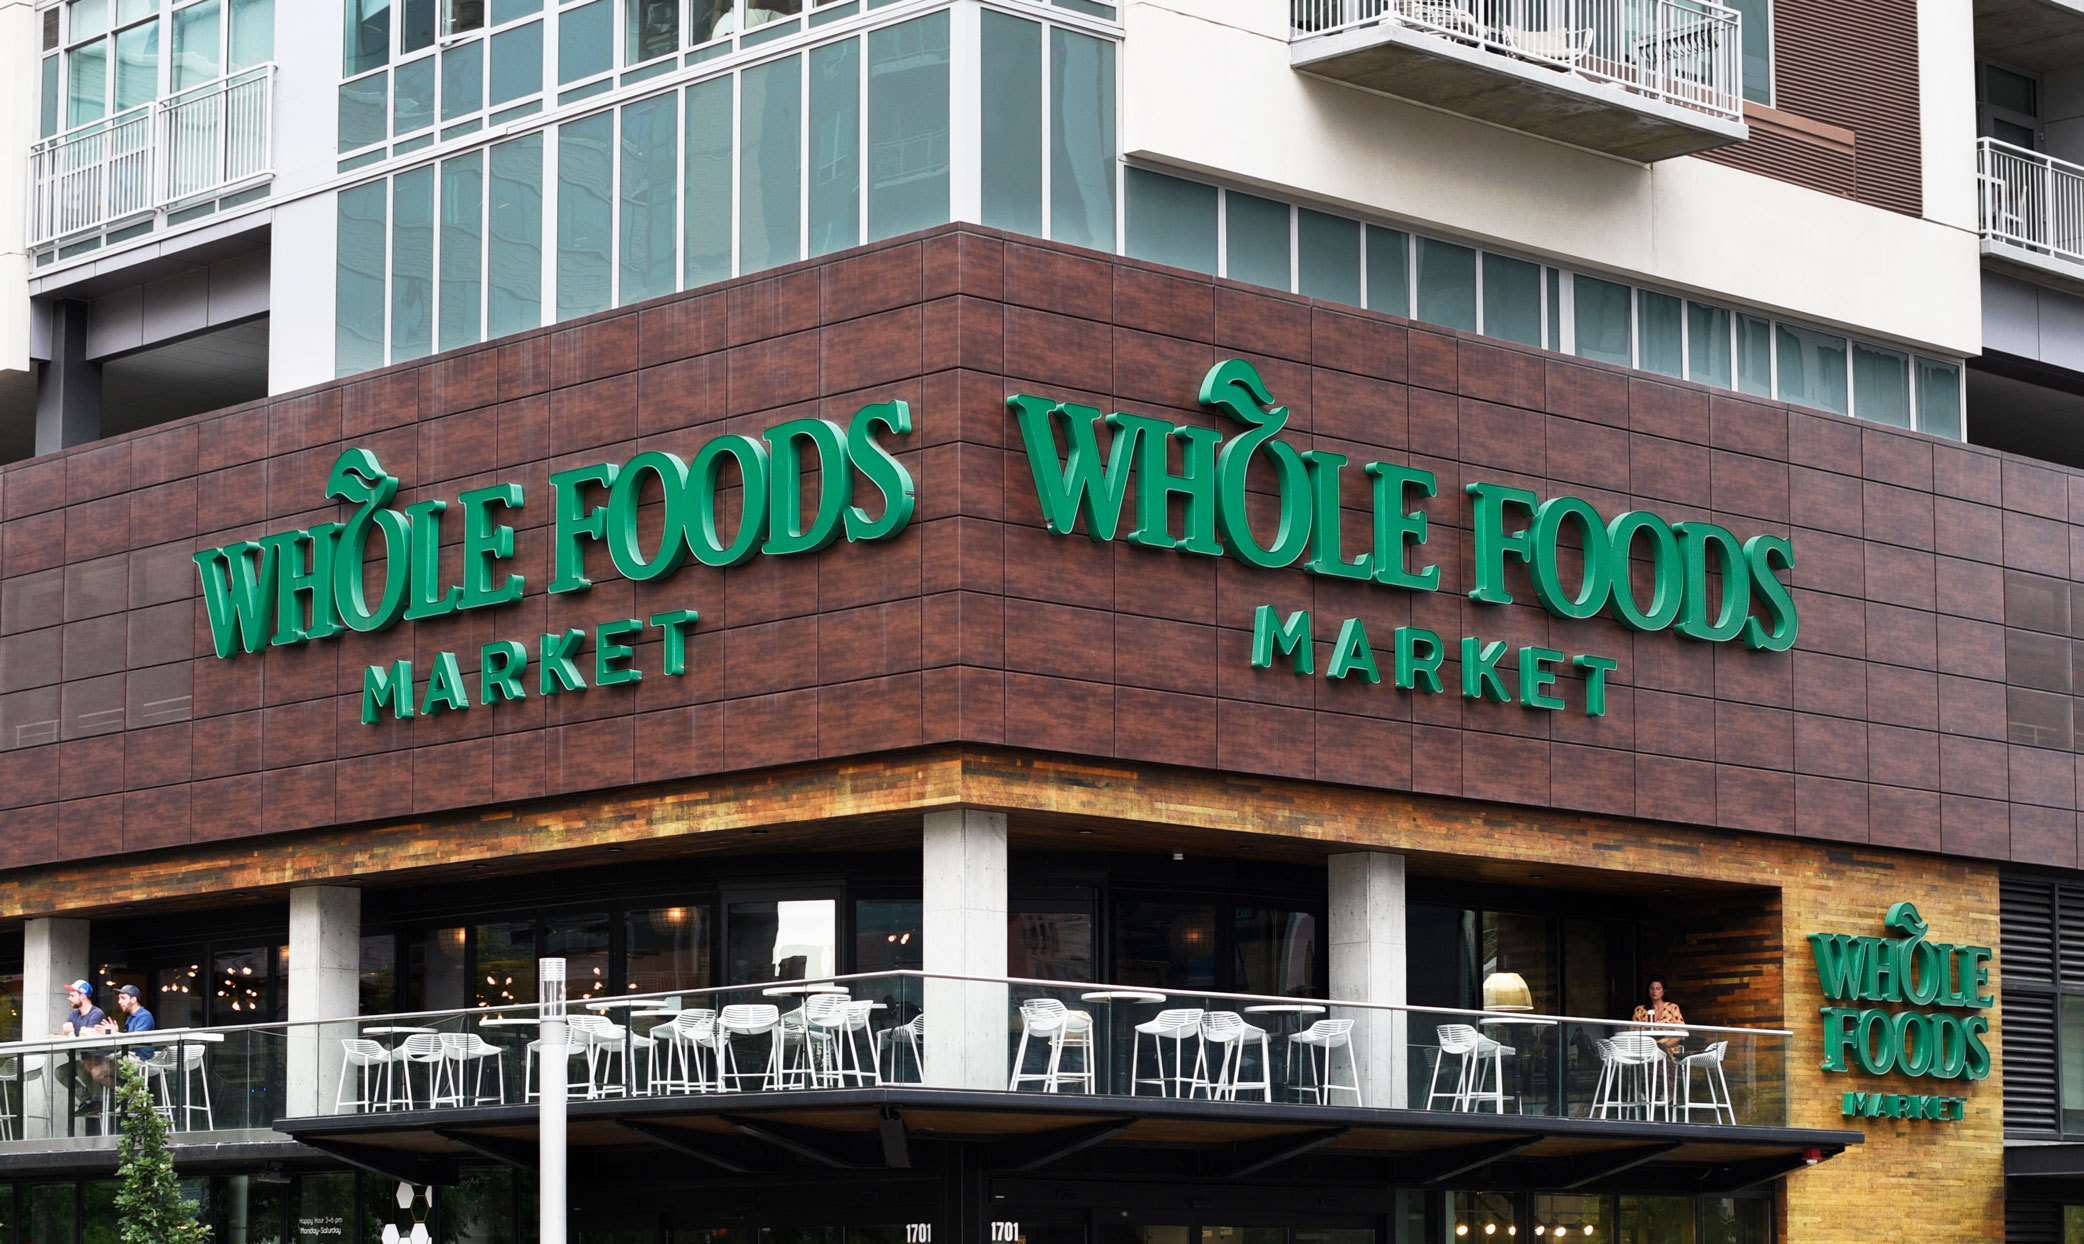 Exterior of Whole Foods Store